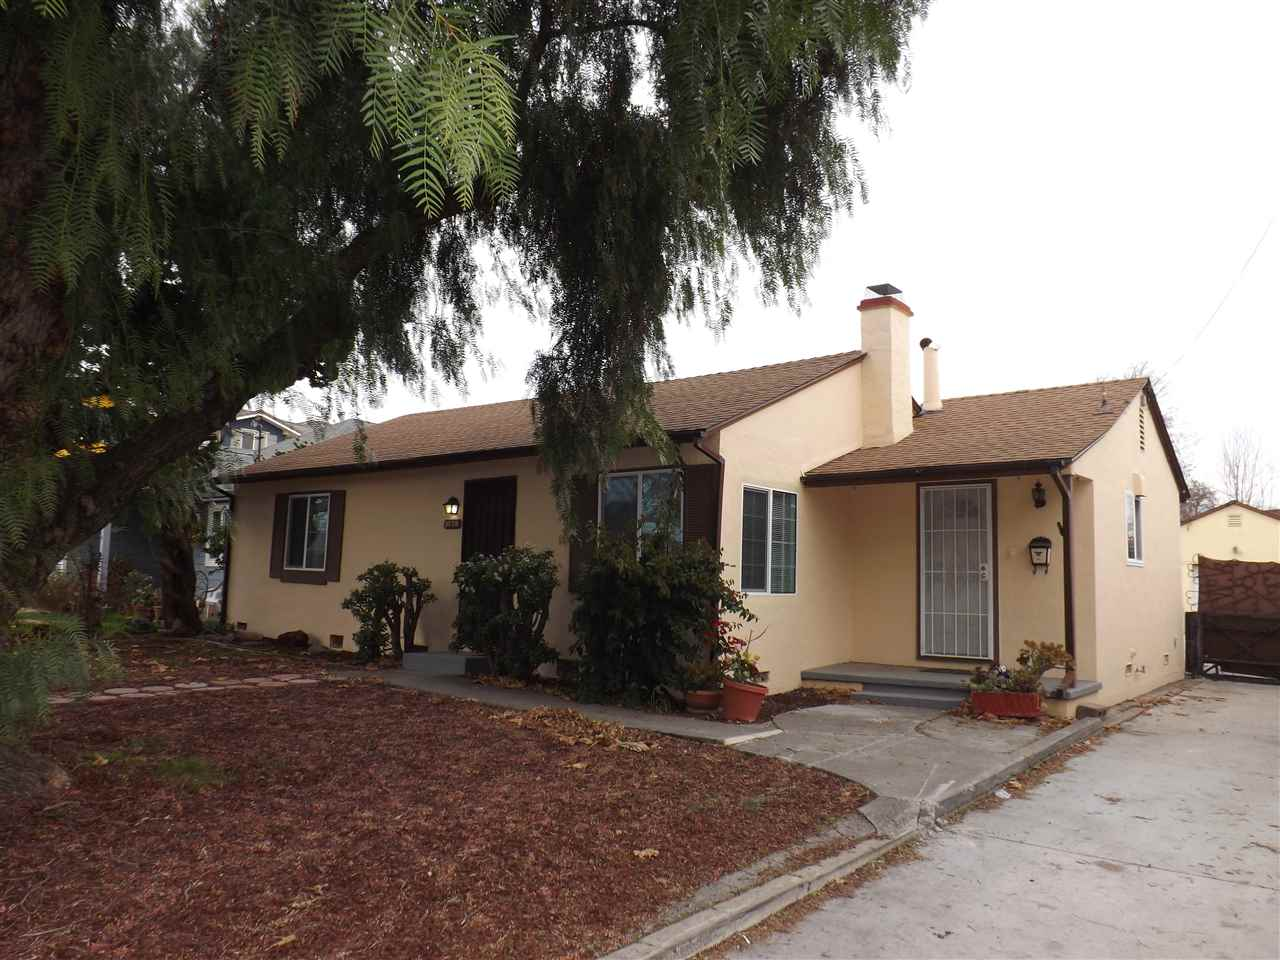 Single Family Home for Rent at 3638 Union Street 3638 Union Street Fremont, California 94538 United States